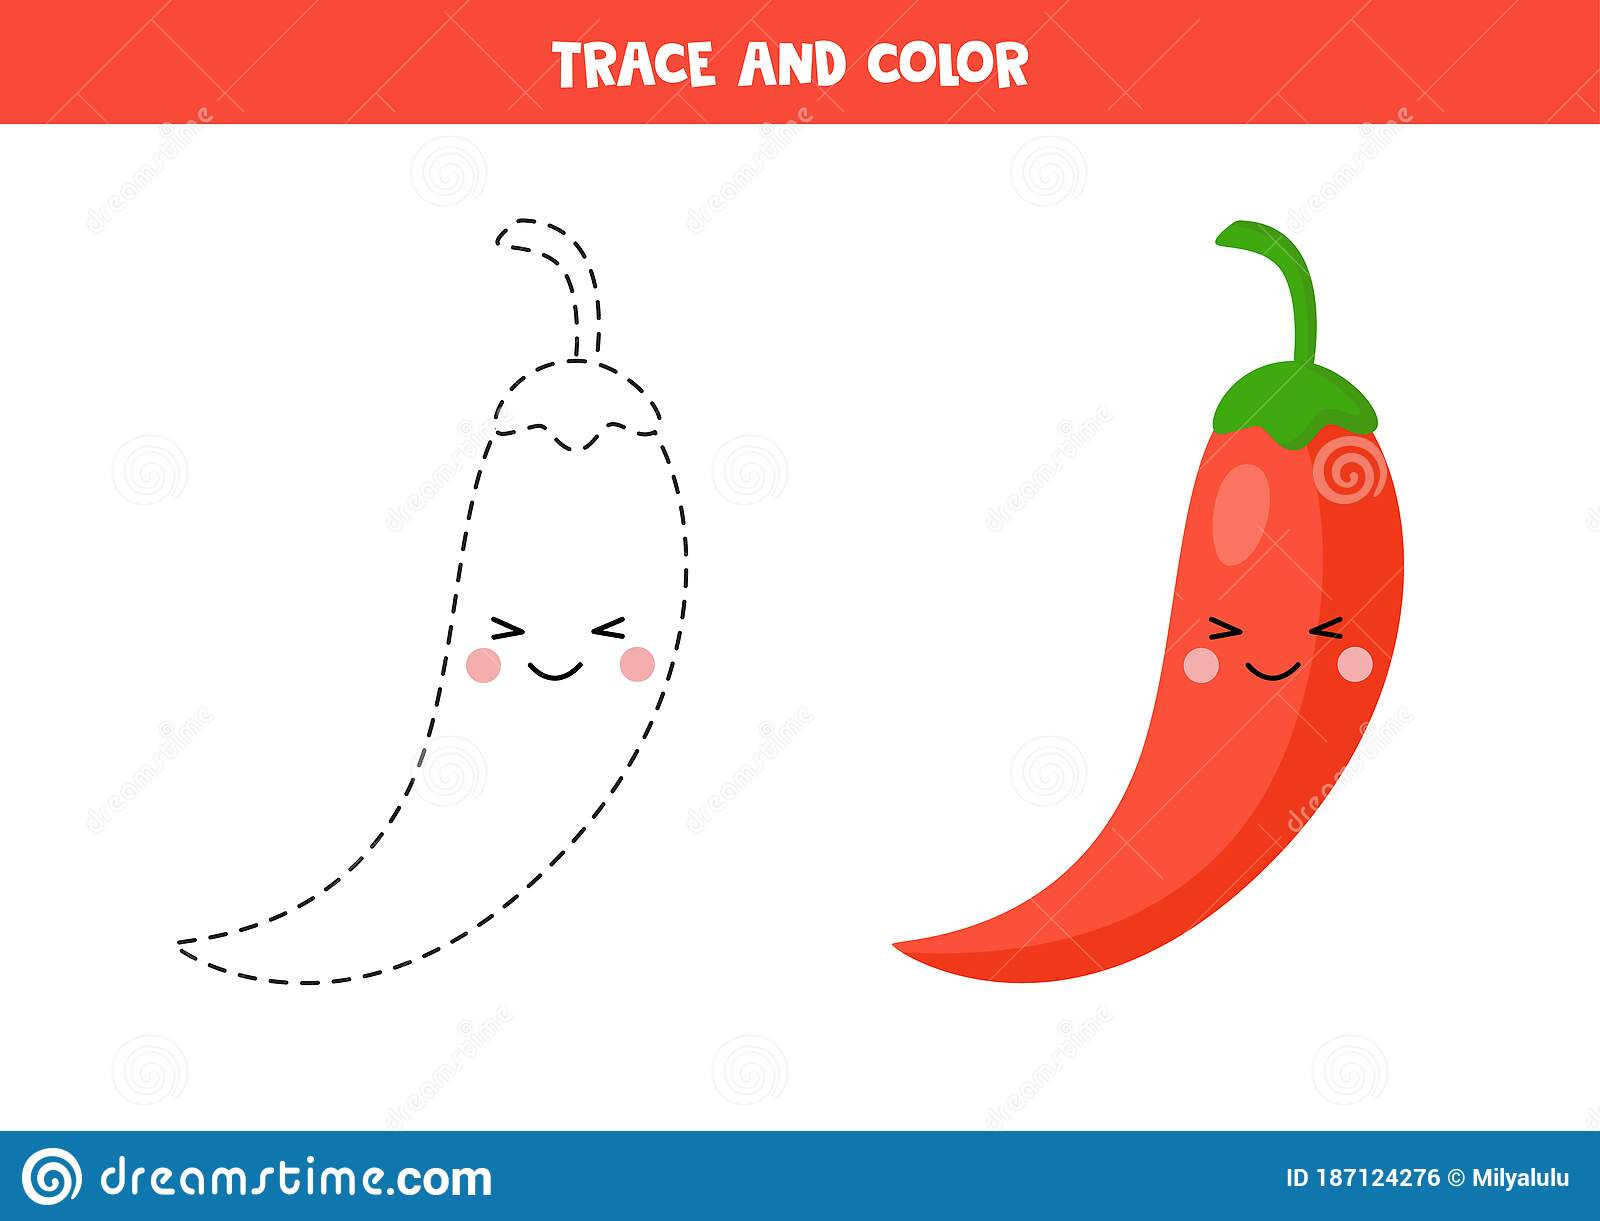 Handwriting Practice For Kids Trace Red Chili Pepper And